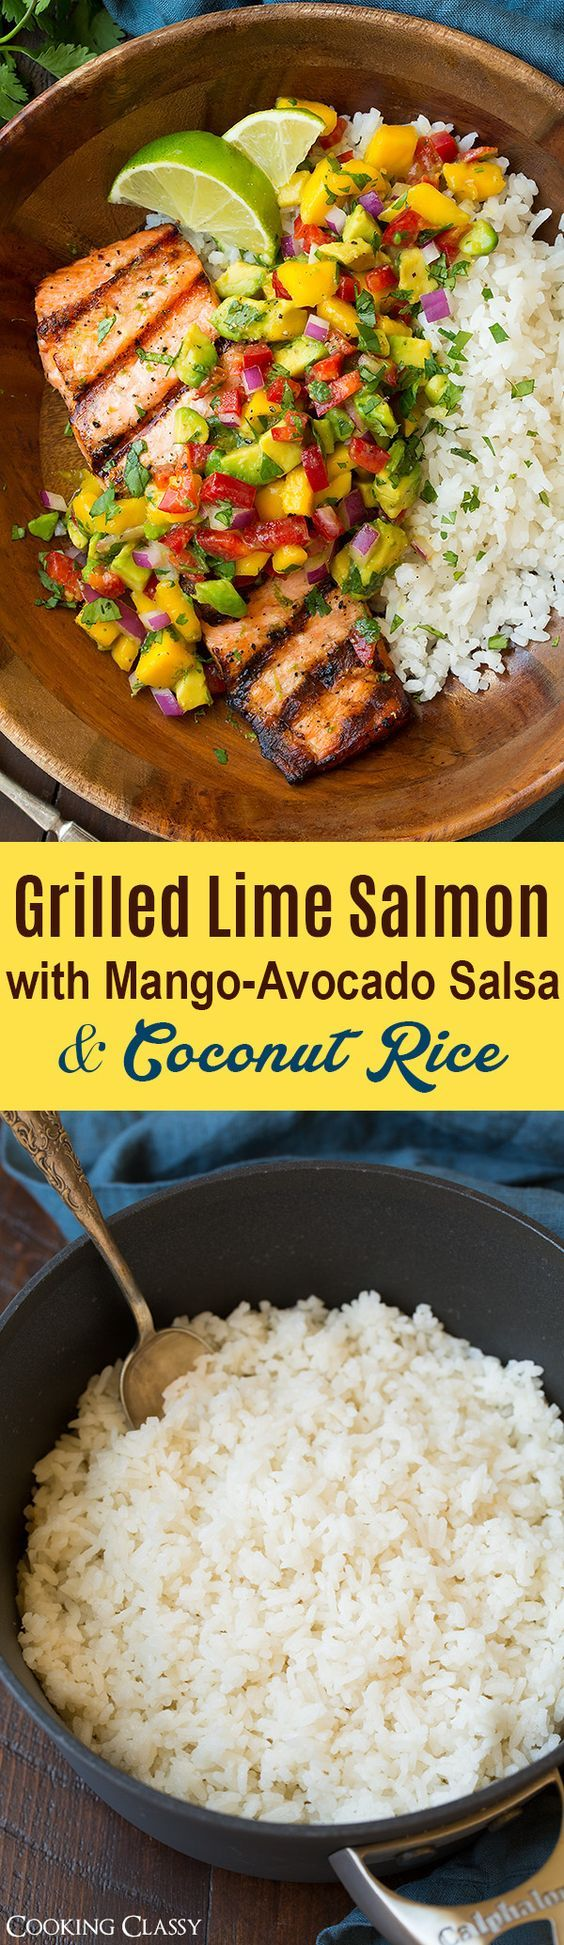 Grilled Lime Salmon With Avocadomango Salsa And Coconut Rice